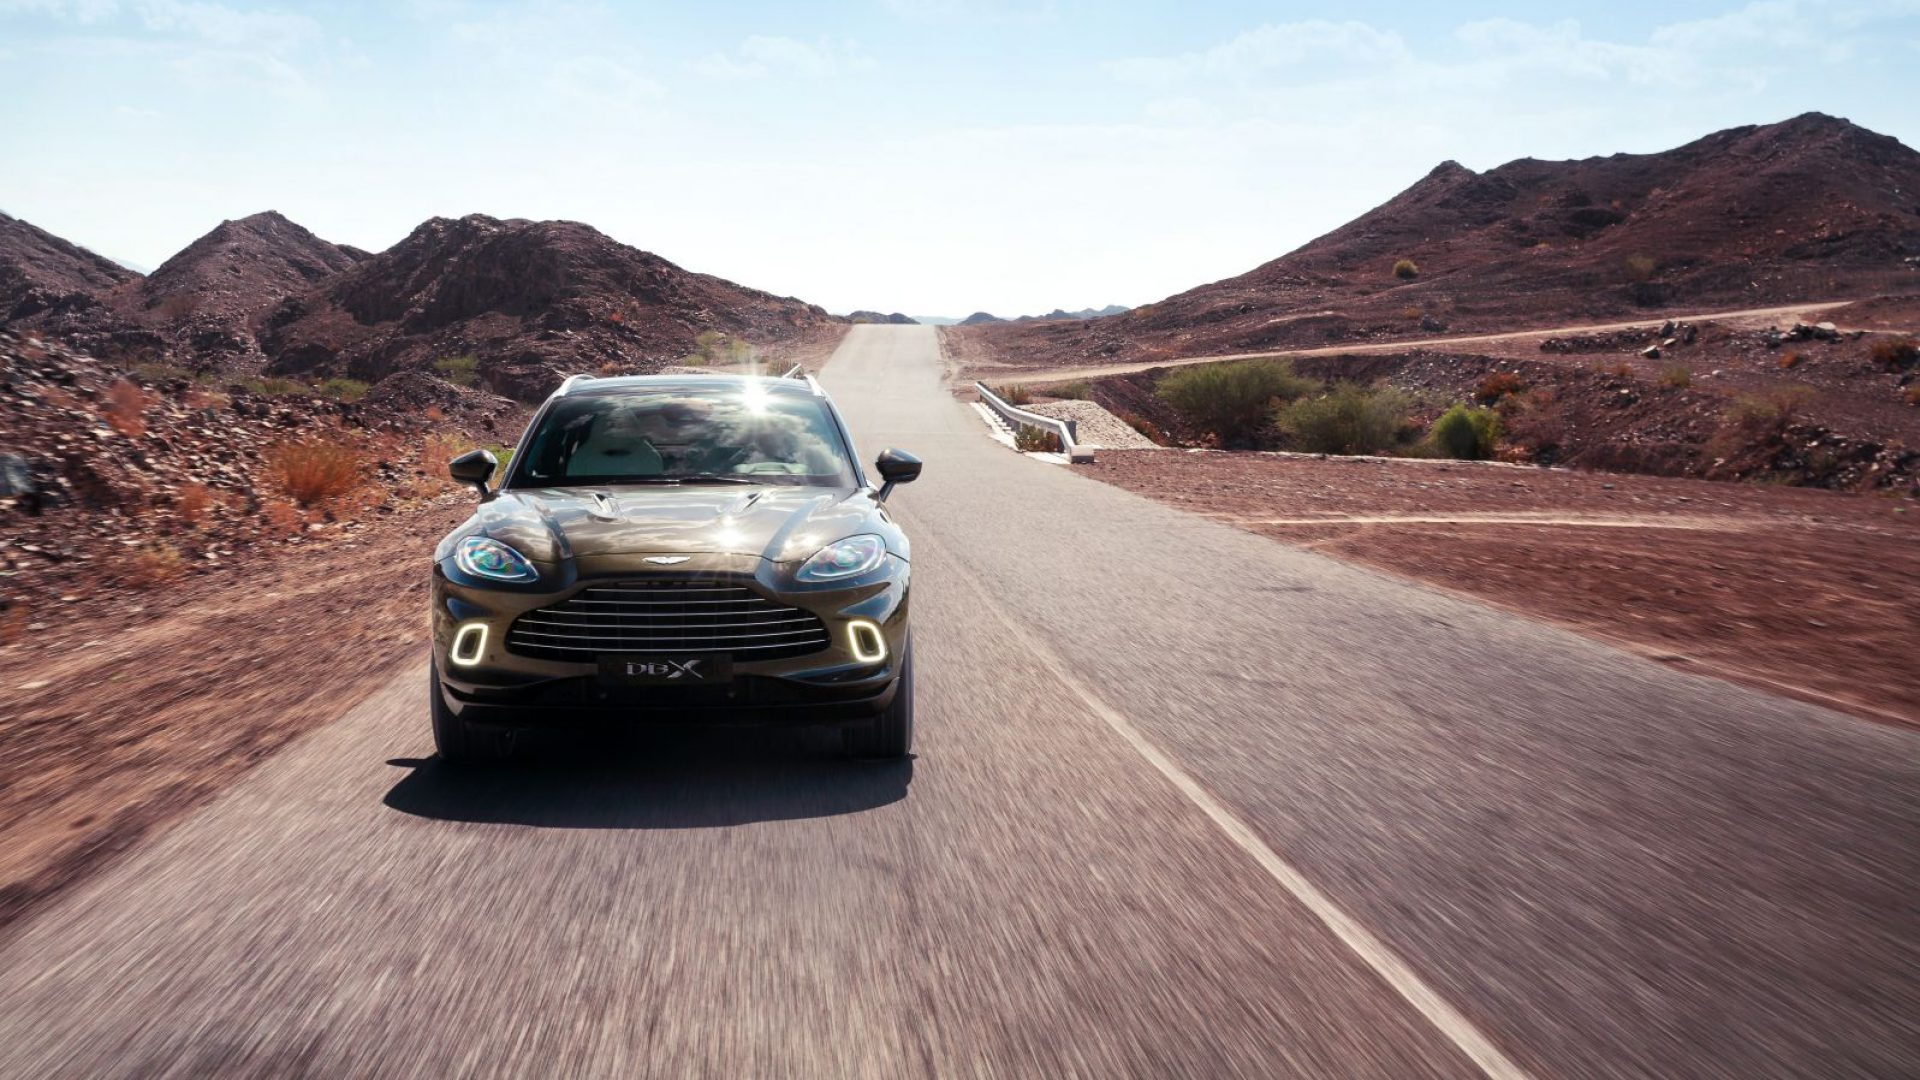 aston-martin-dbx-in-the-middle-east-26-jpg.